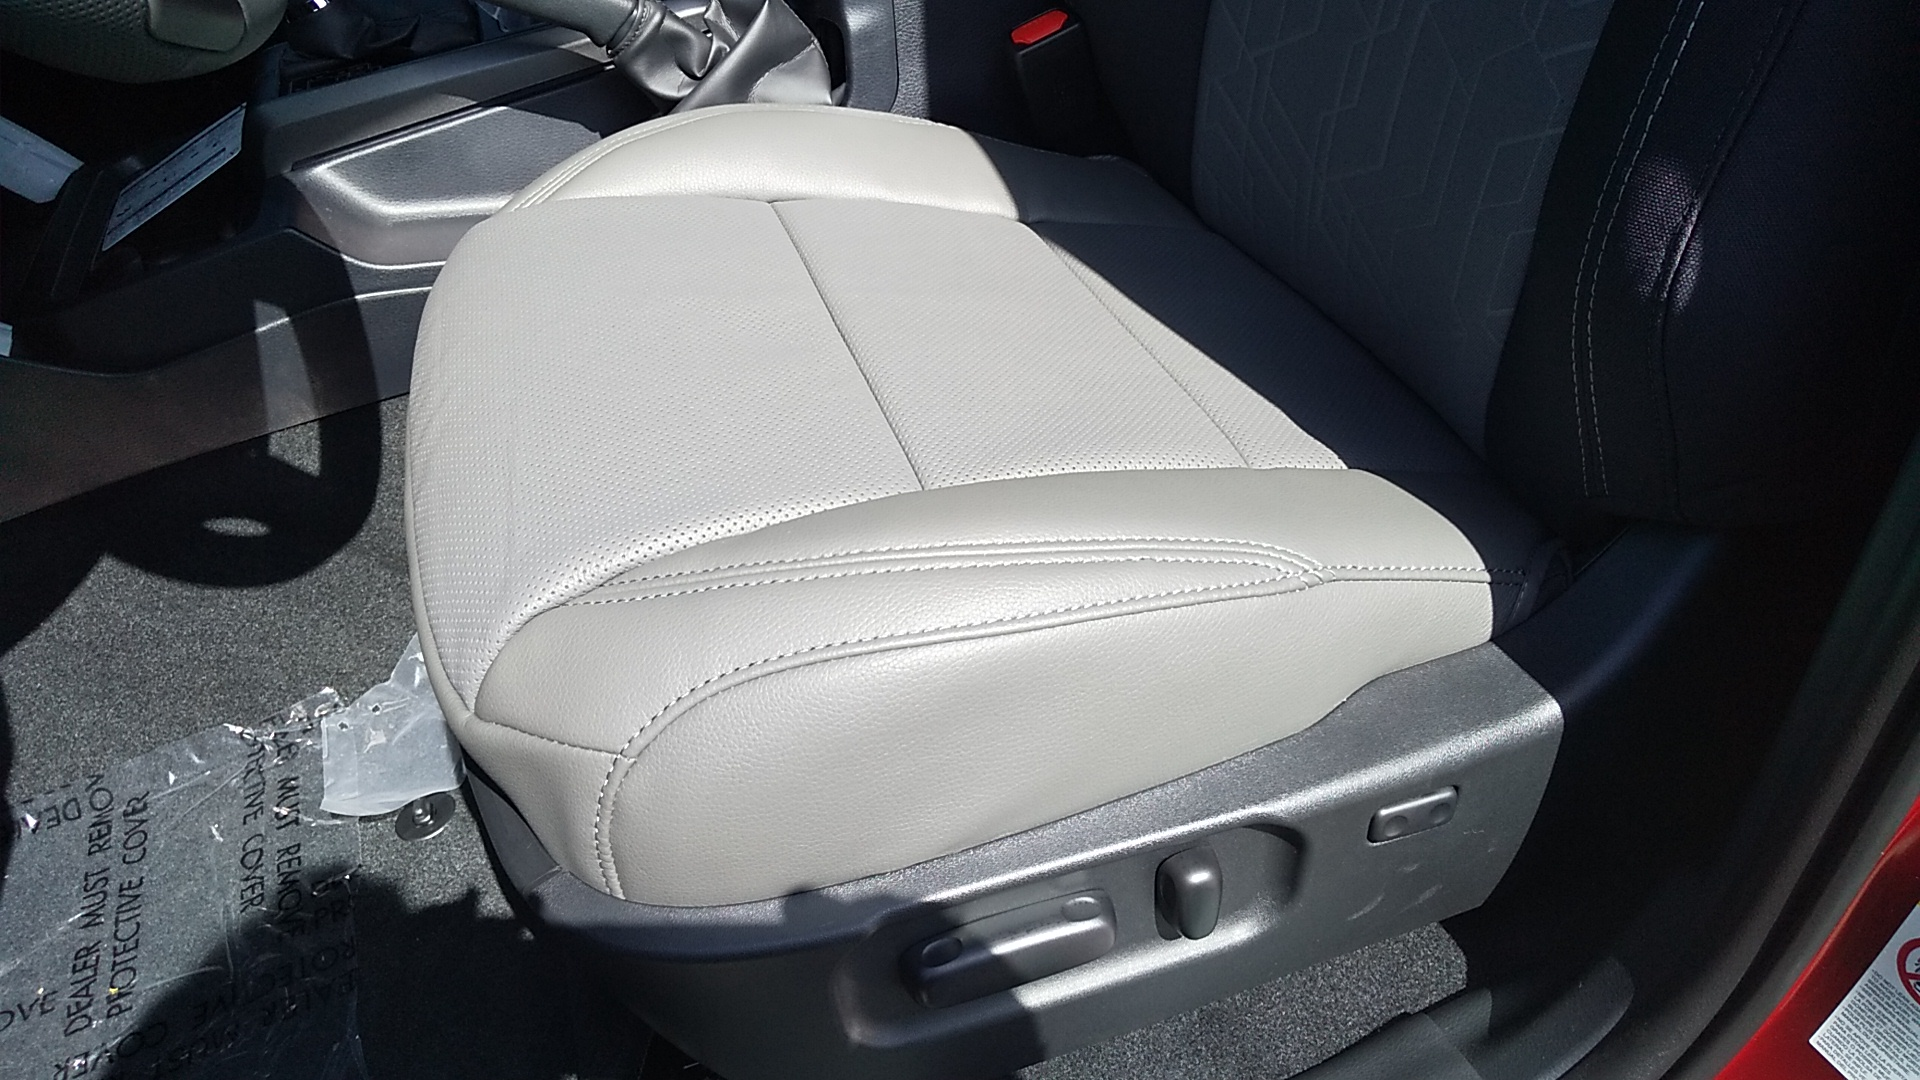 Toyota Tacoma 2016 2020 Clazzio Seat Covers The Best On